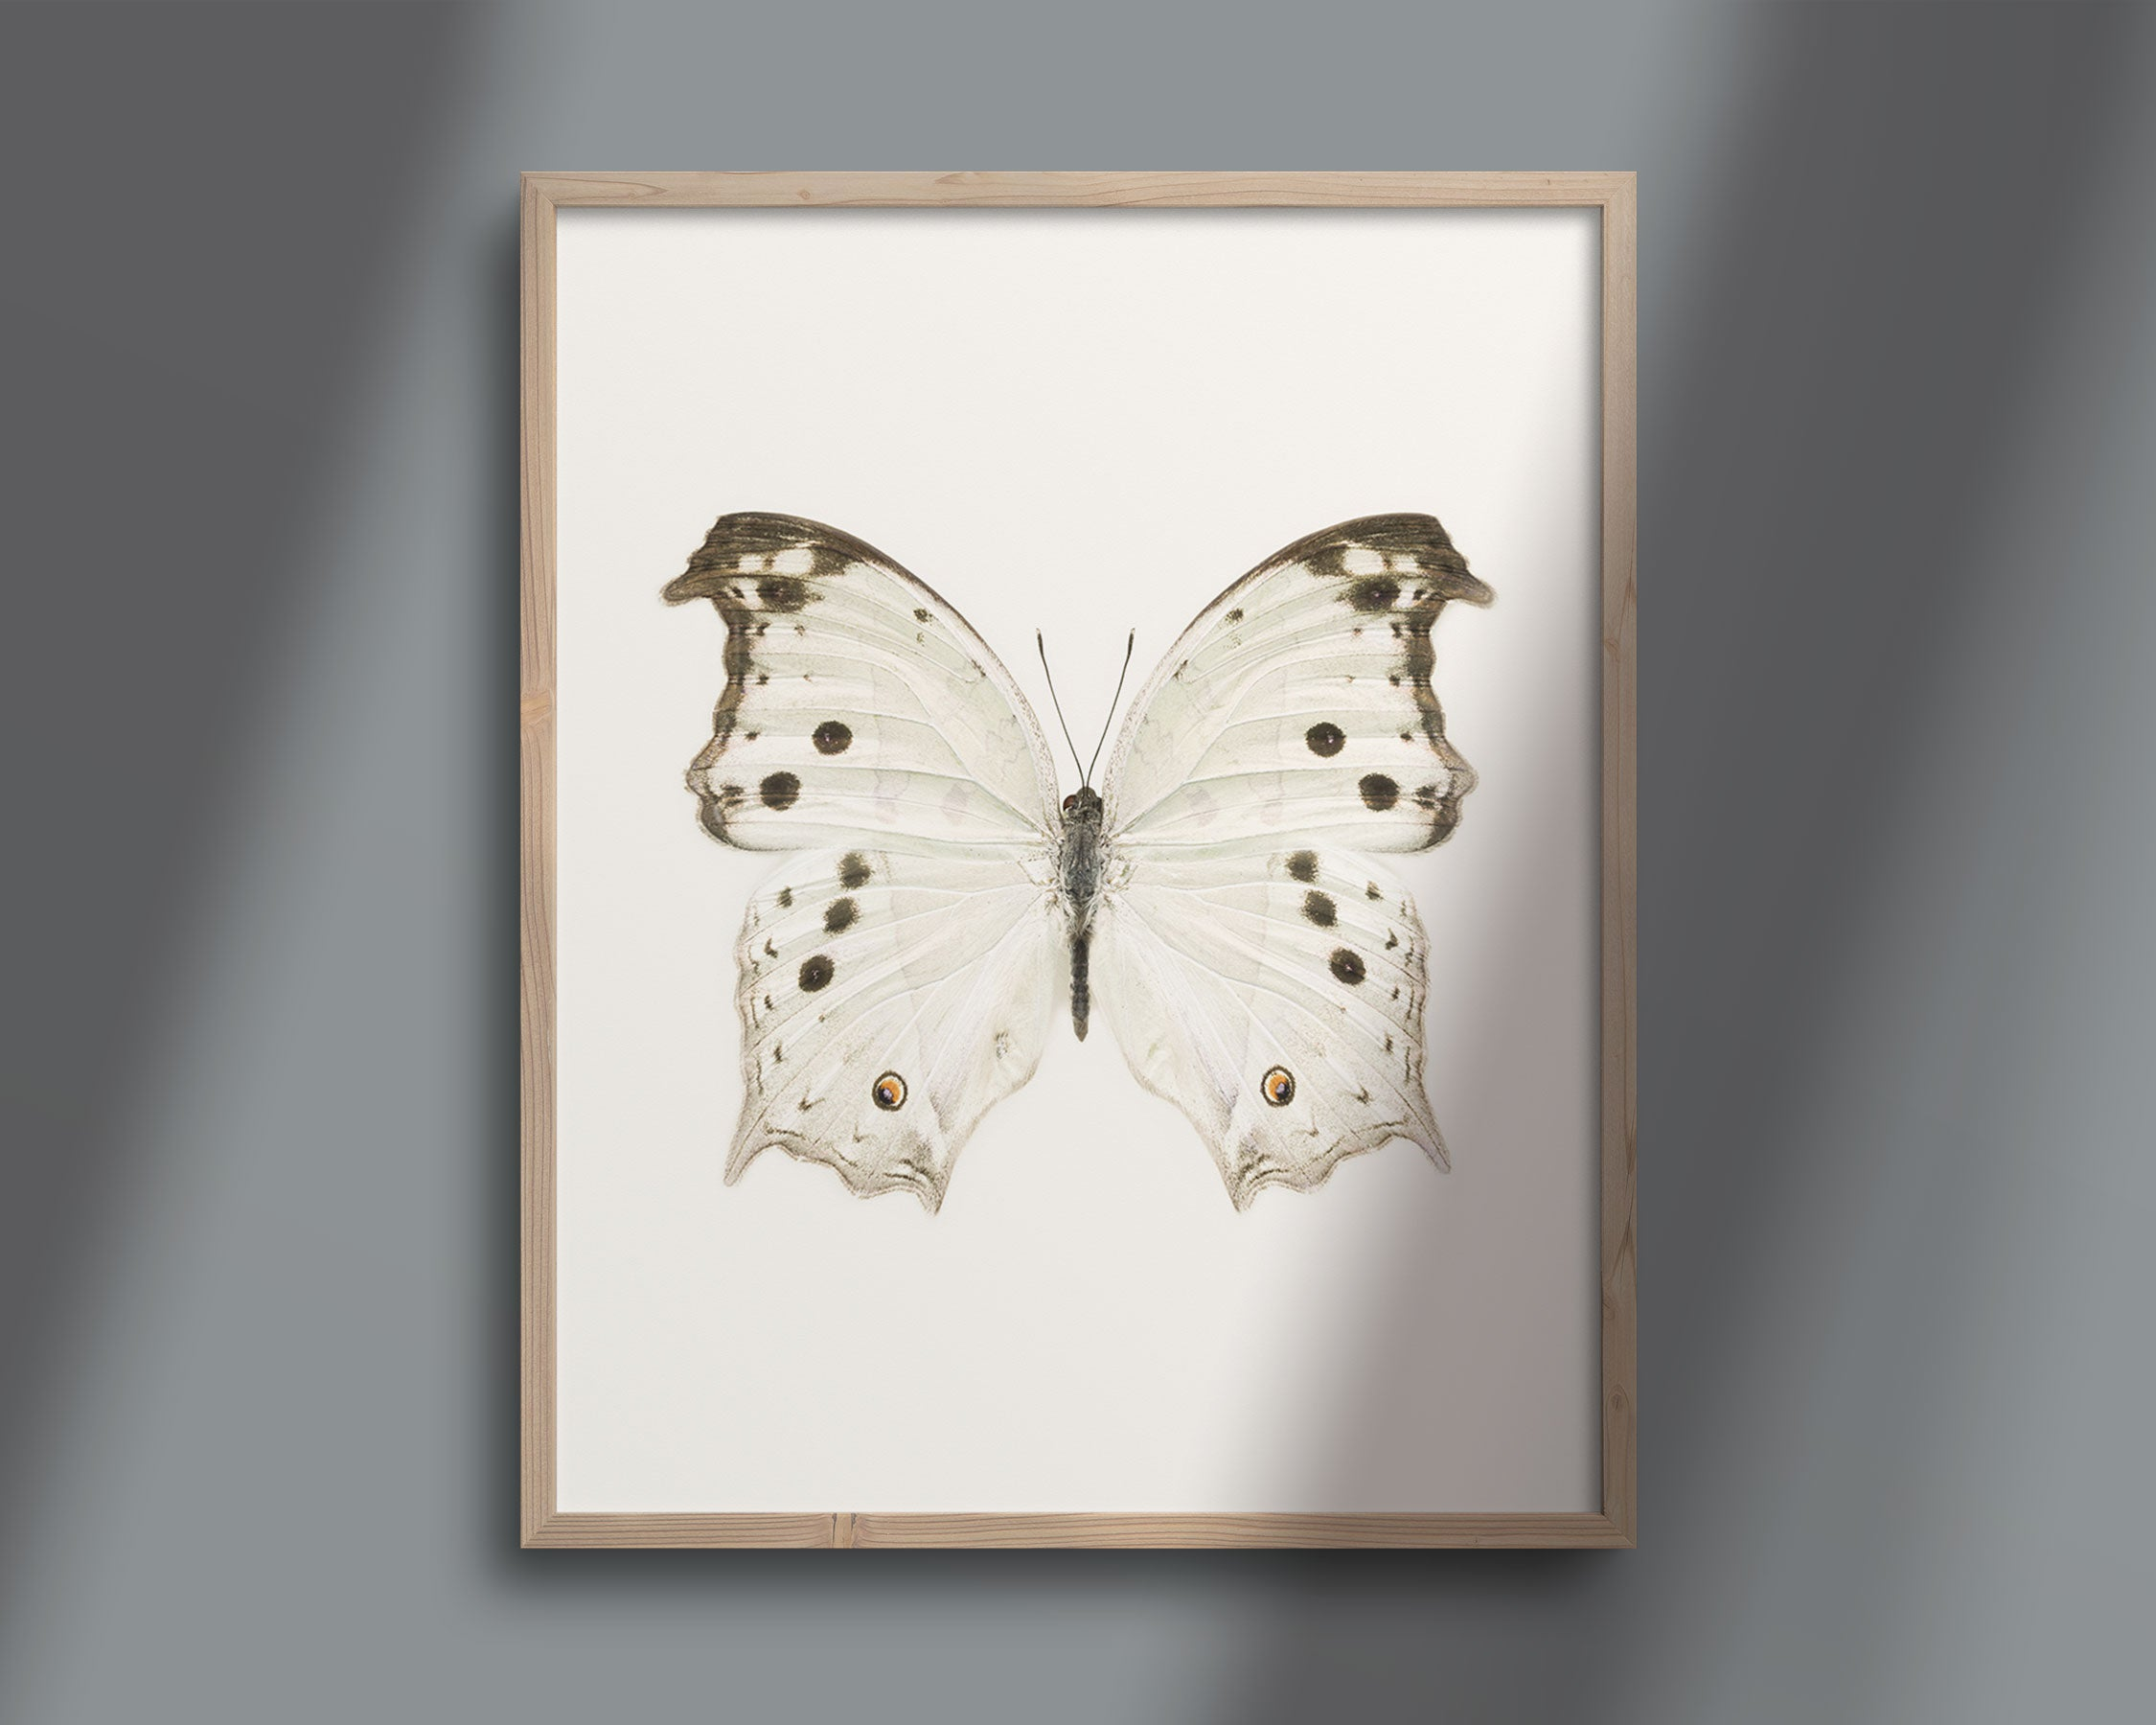 Butterfly Photo No. 3 - Salamis Parhassus - Mother-of-Pearl Butterfly Print